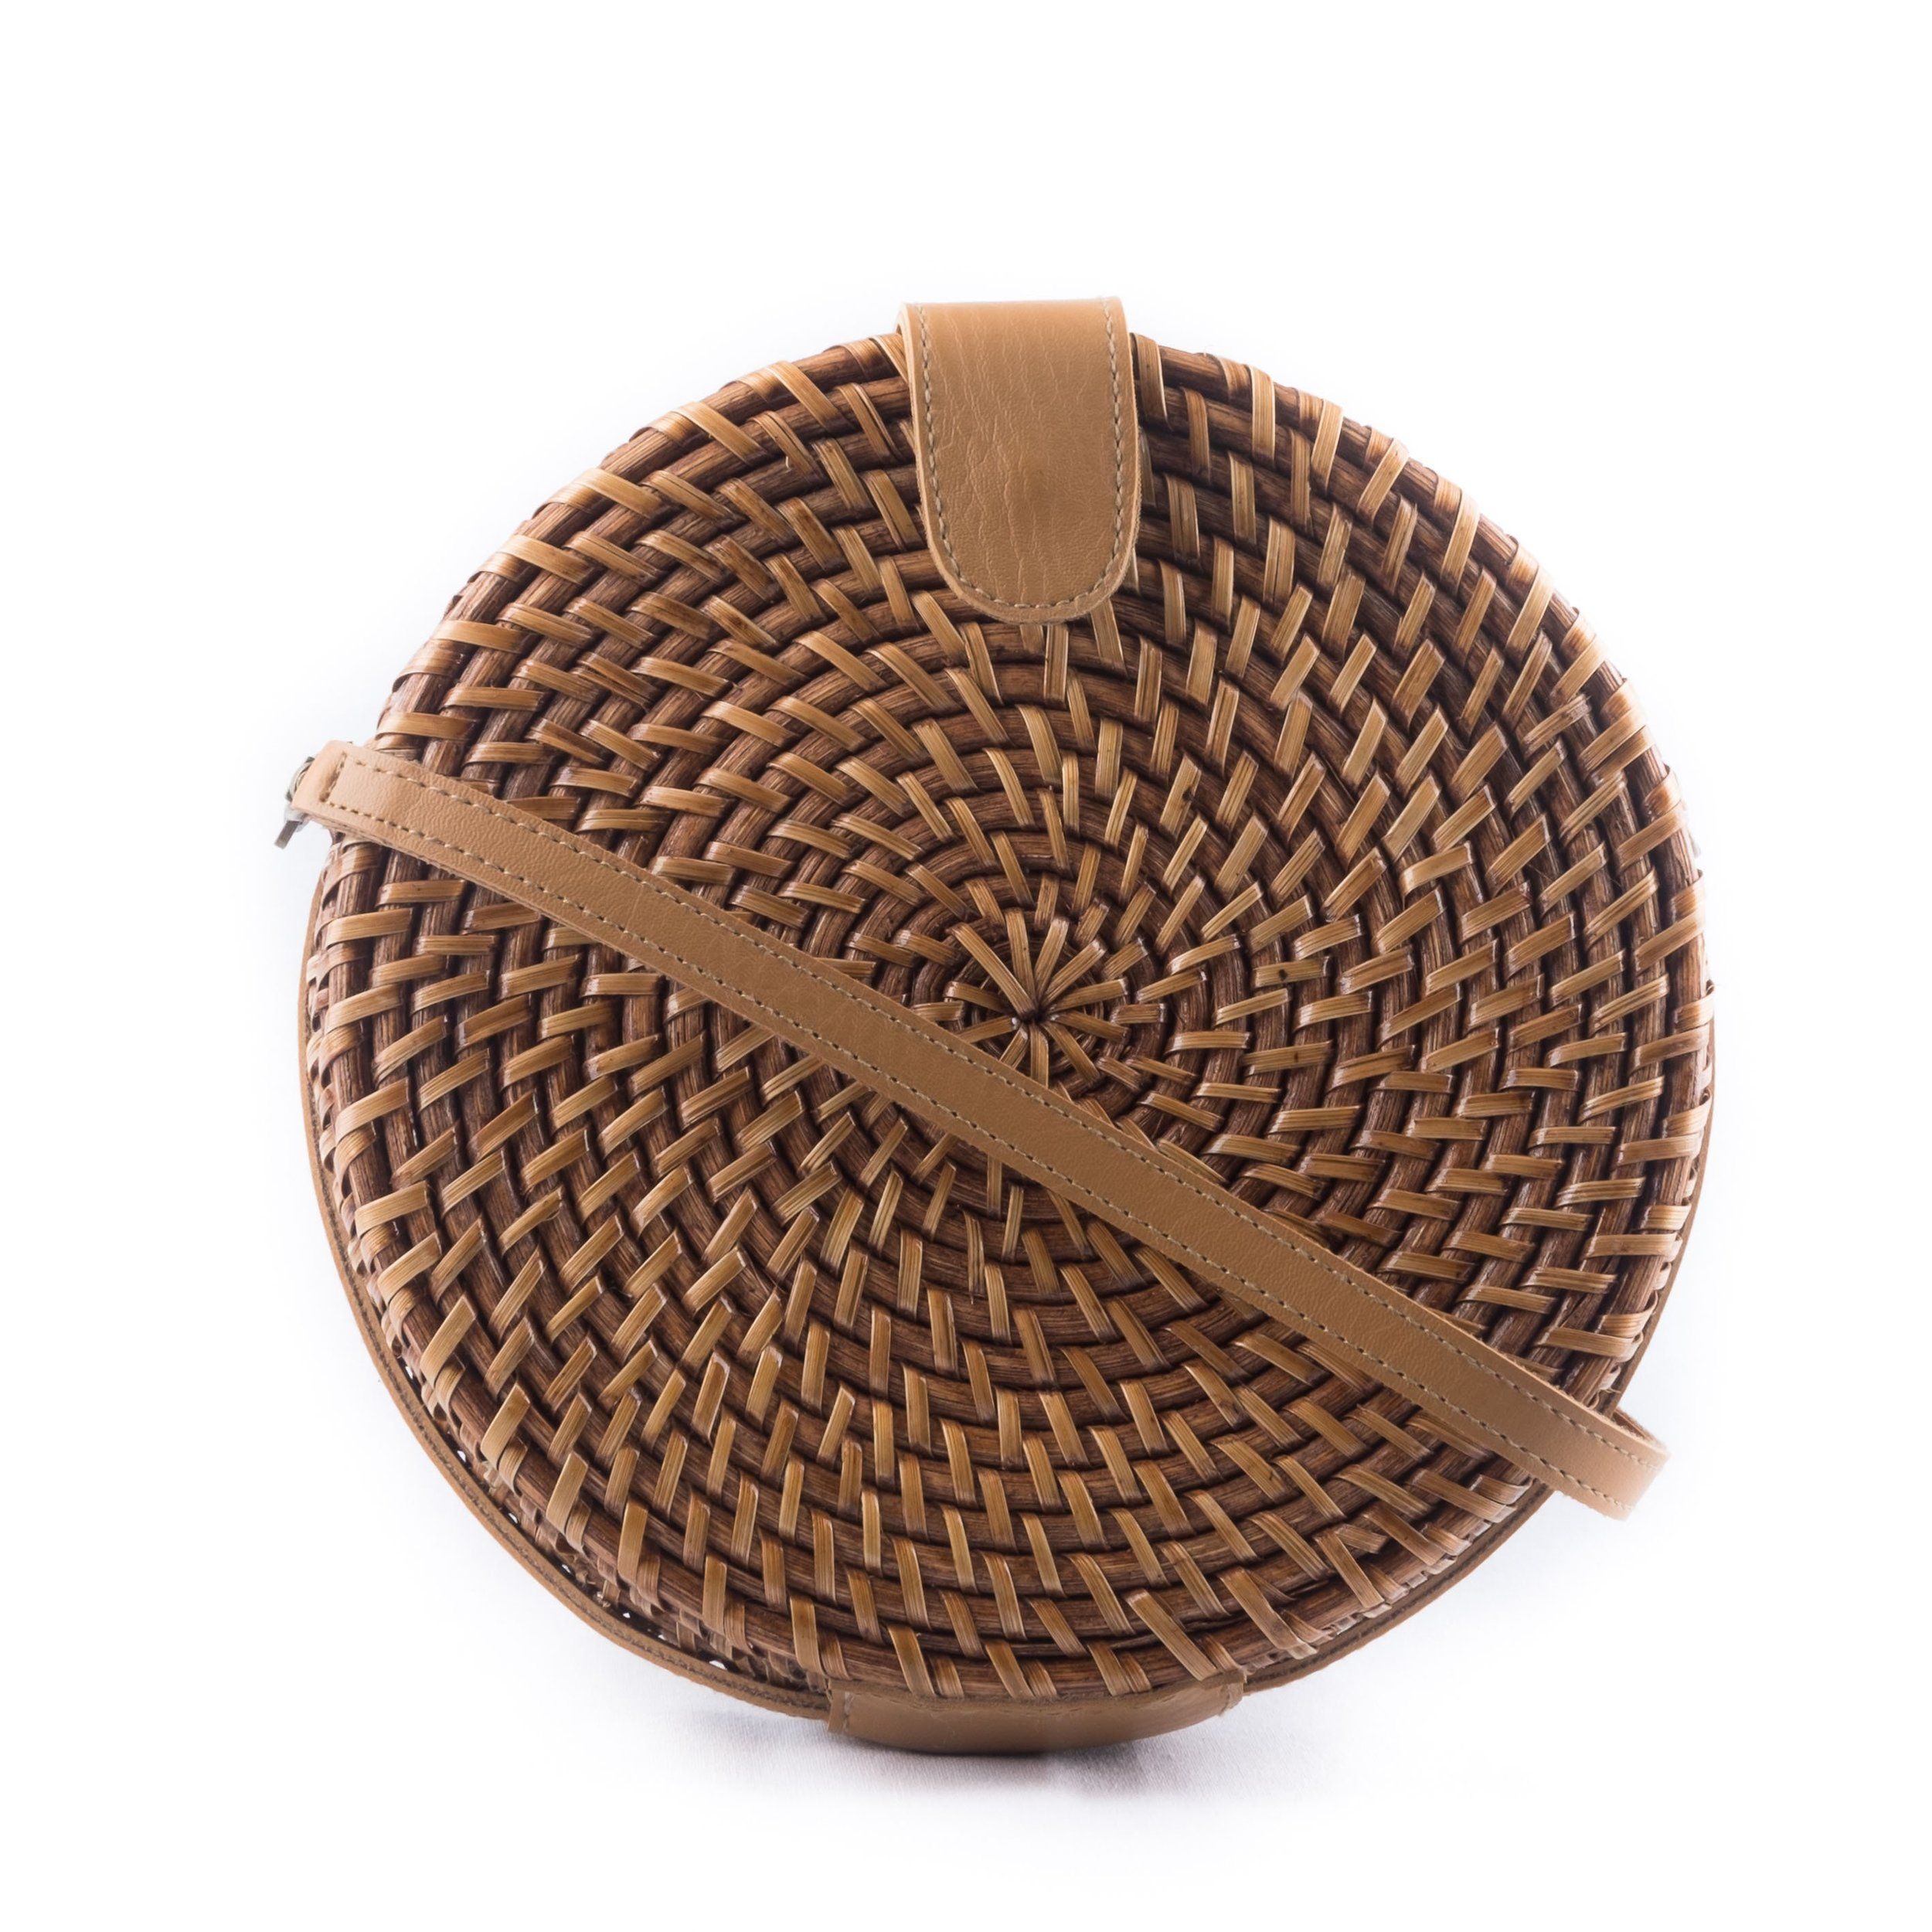 Round Rattan Crossbody Bag Made in the Philippines Handwoven